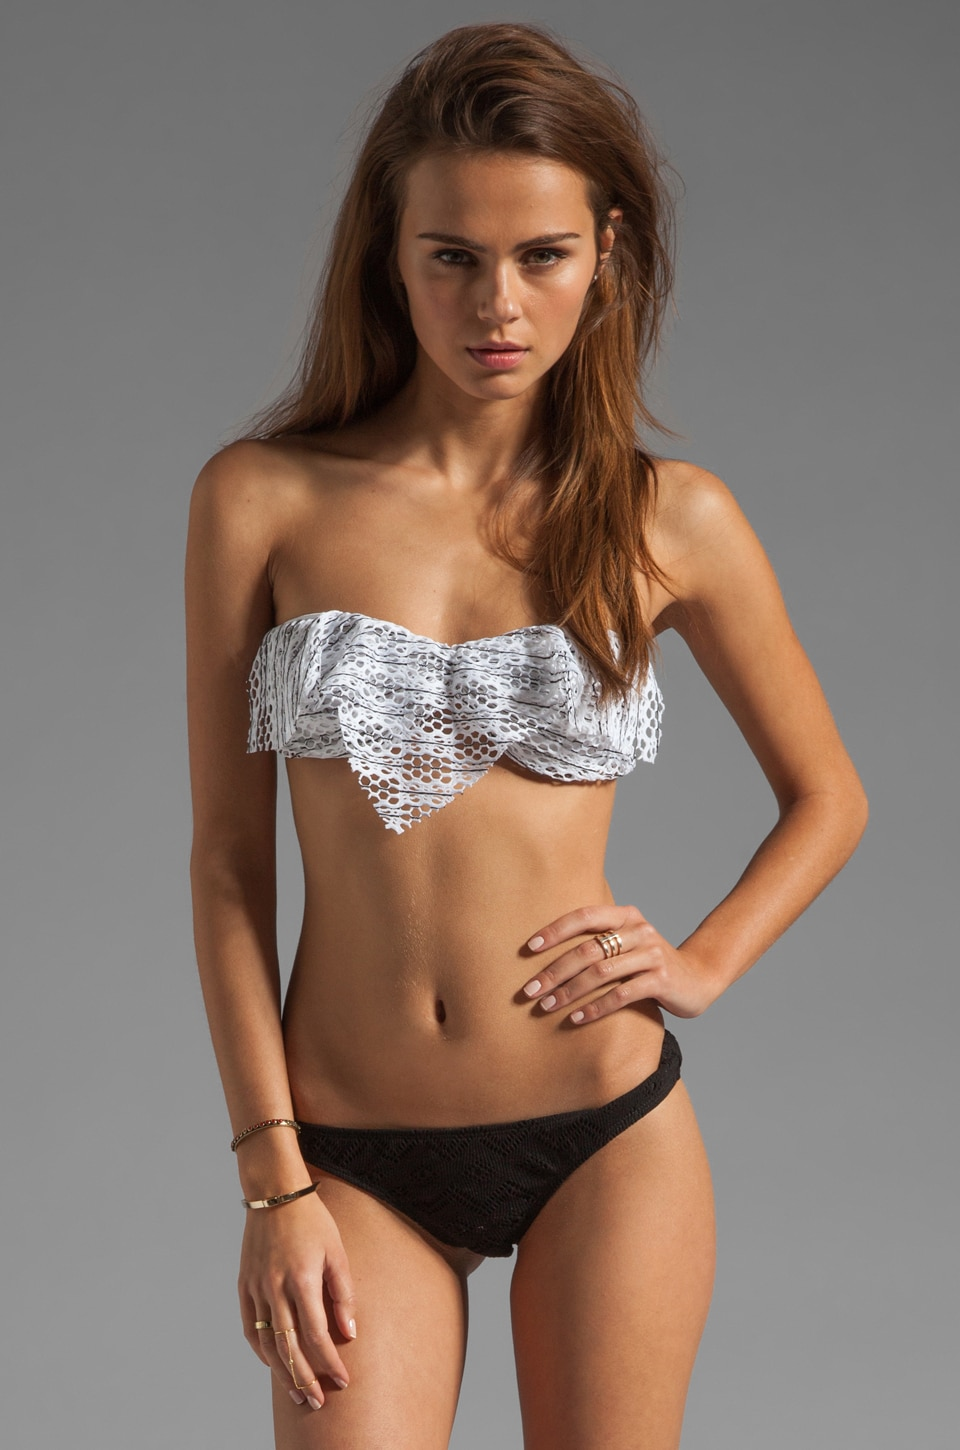 Tyler Rose Swimwear Gypsy Crochet Bandeau in White/Black Stripe